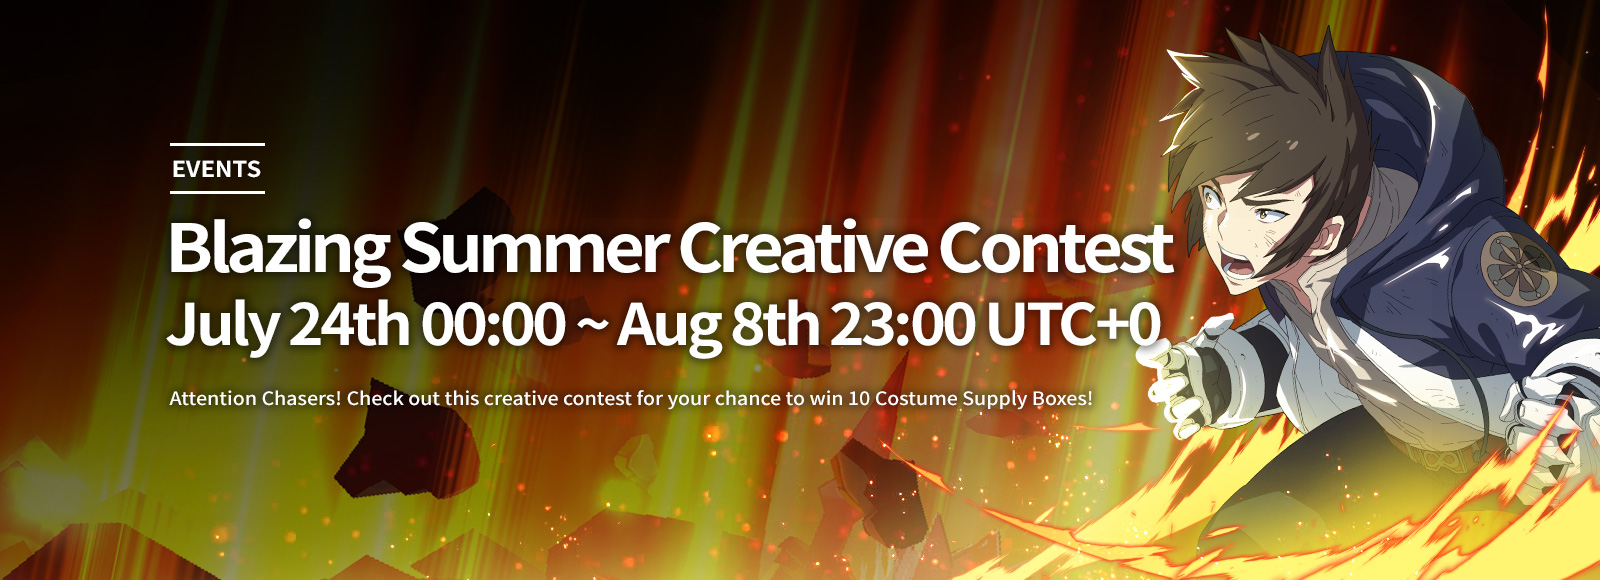 Blazing Summer Creative Contest